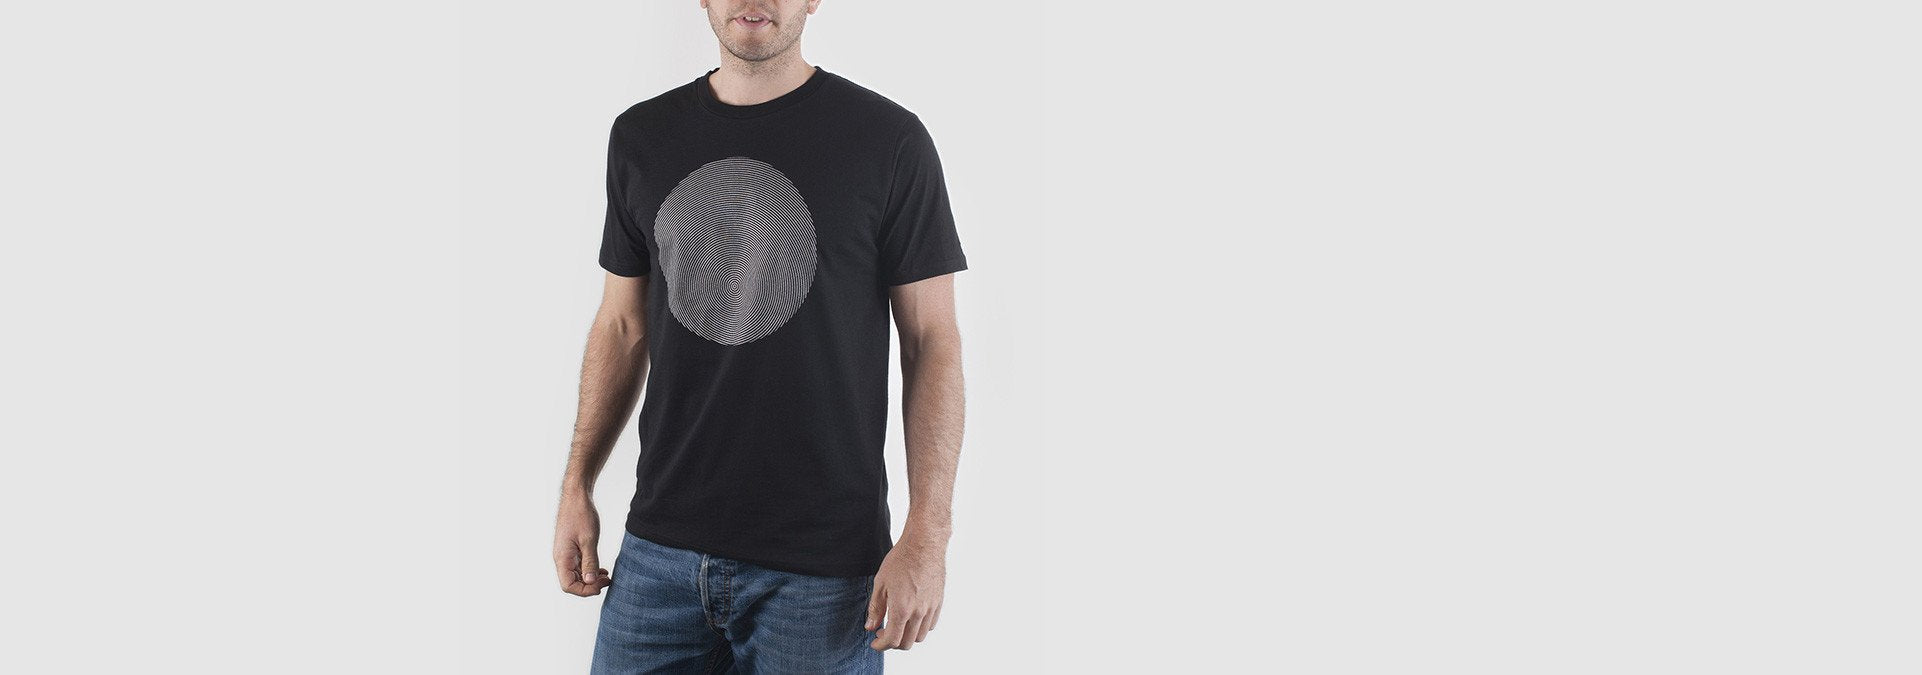 Geomet Disc Organic Cotton T-Shirt Black